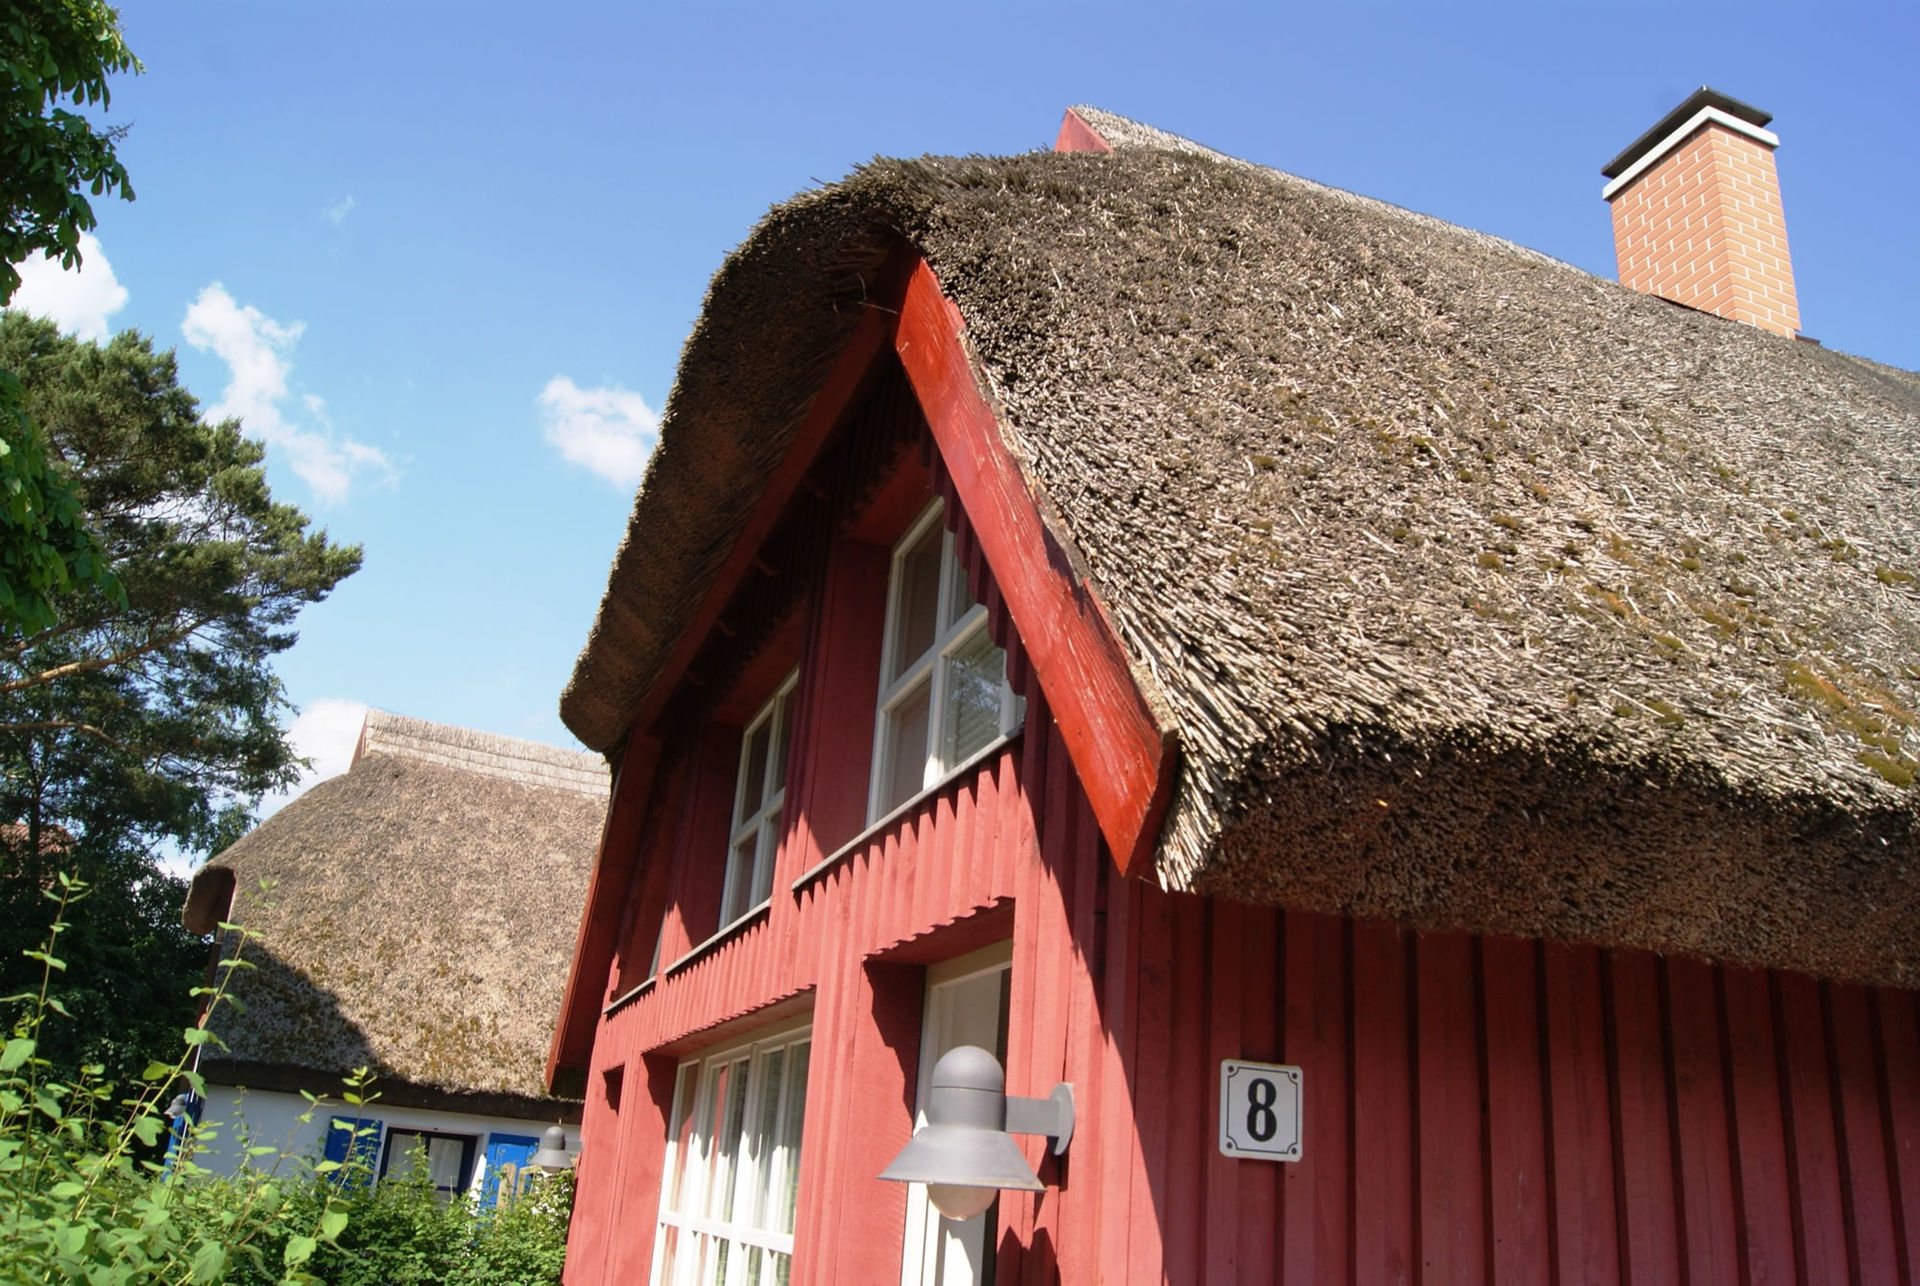 Thatched-roof houses and colorful doors